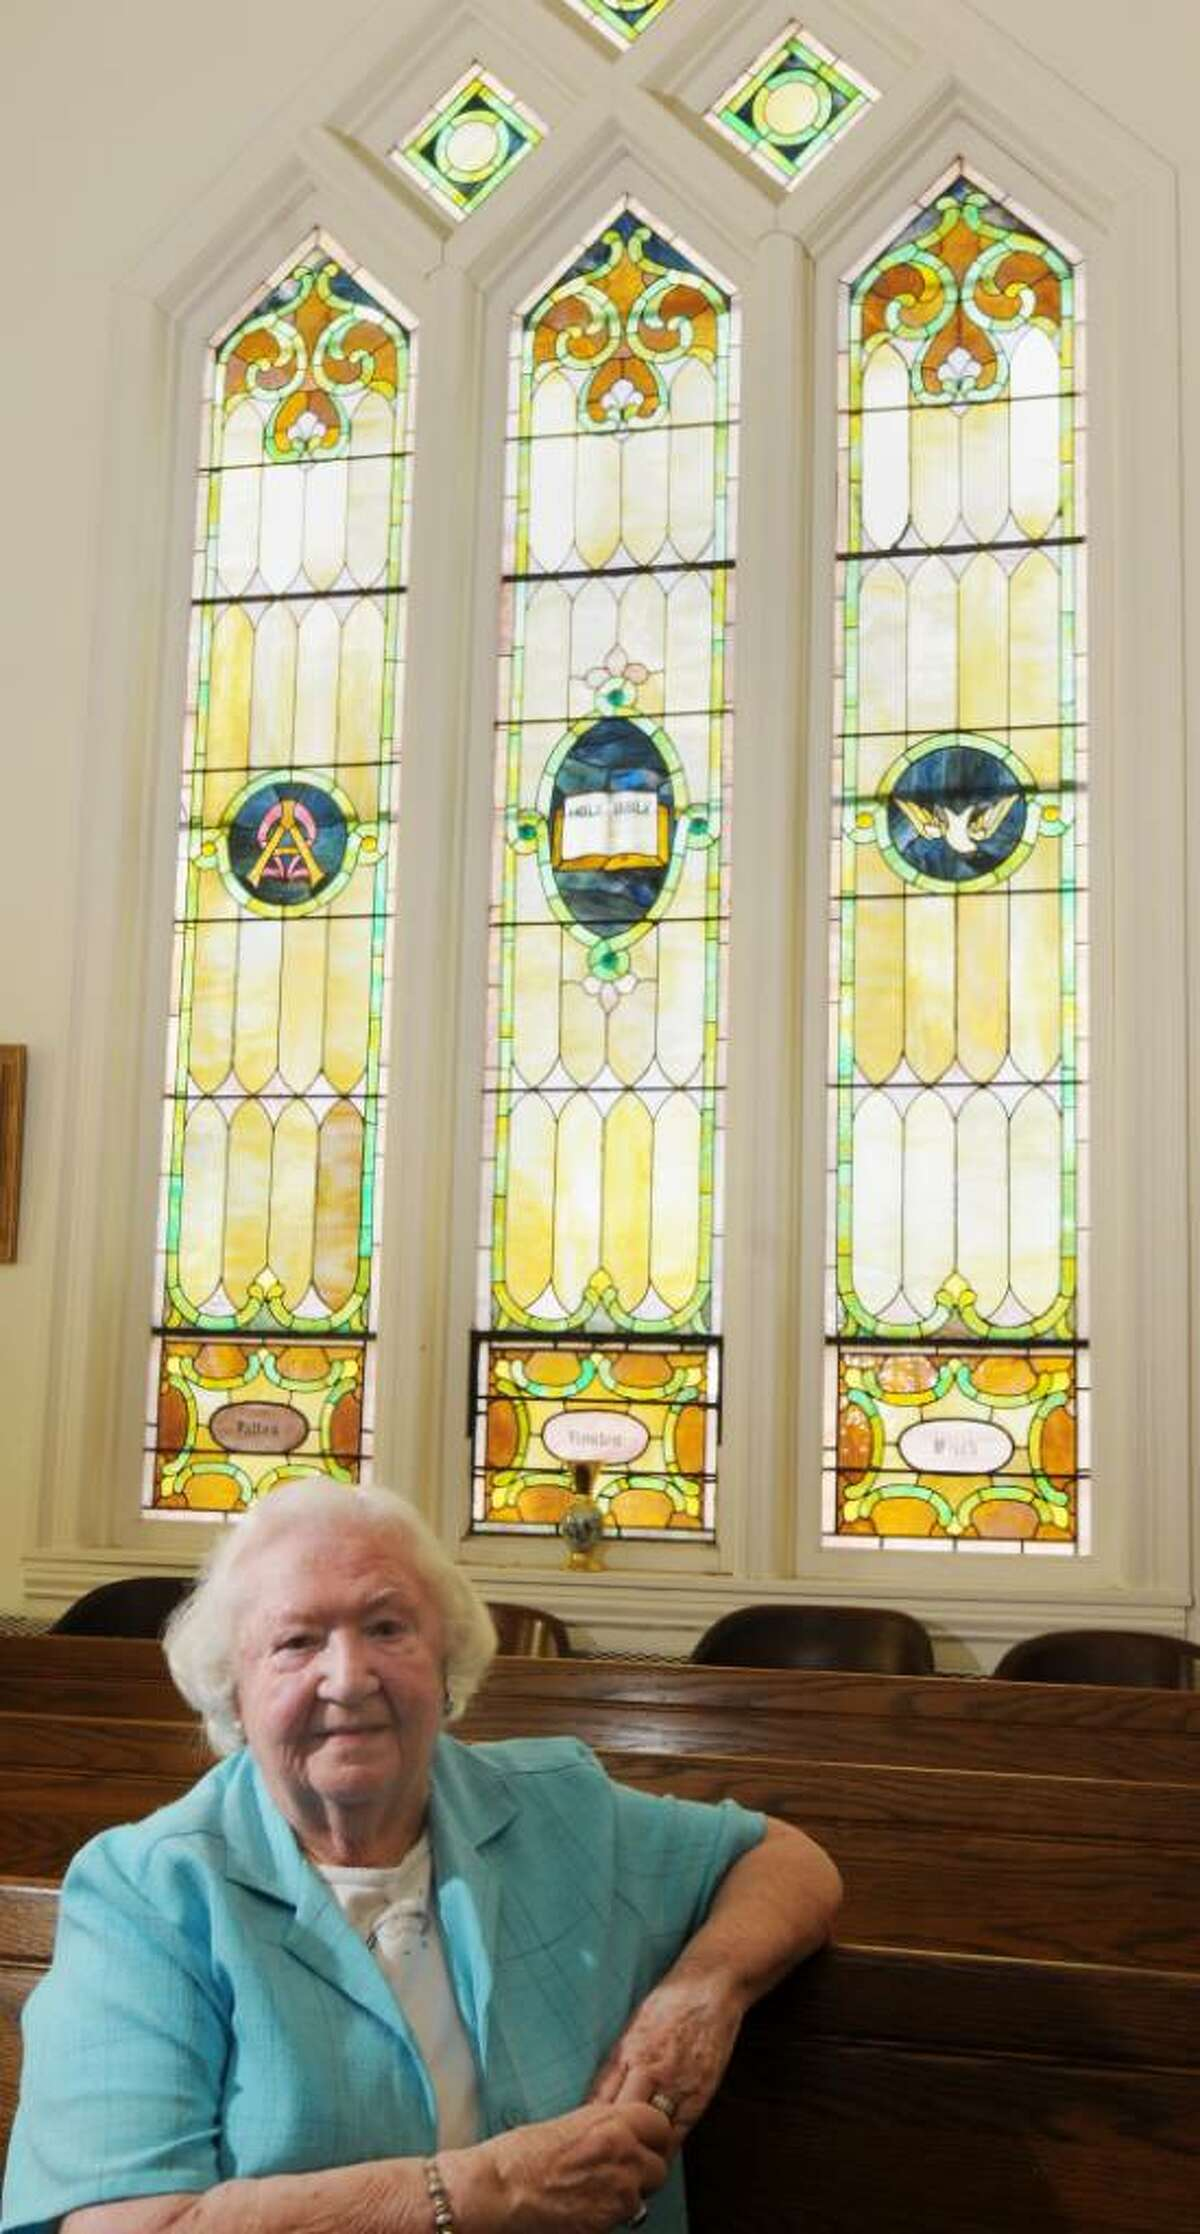 Margaret Hems, 87, volunteer organist and pianist at the Center Brunswick United Methodist Church in Center Brunswick will be honored by the church on June 5 at the Brunswick Elks Lodge where she and her late husband also volunteered. (Luanne M. Ferris/Times Union)